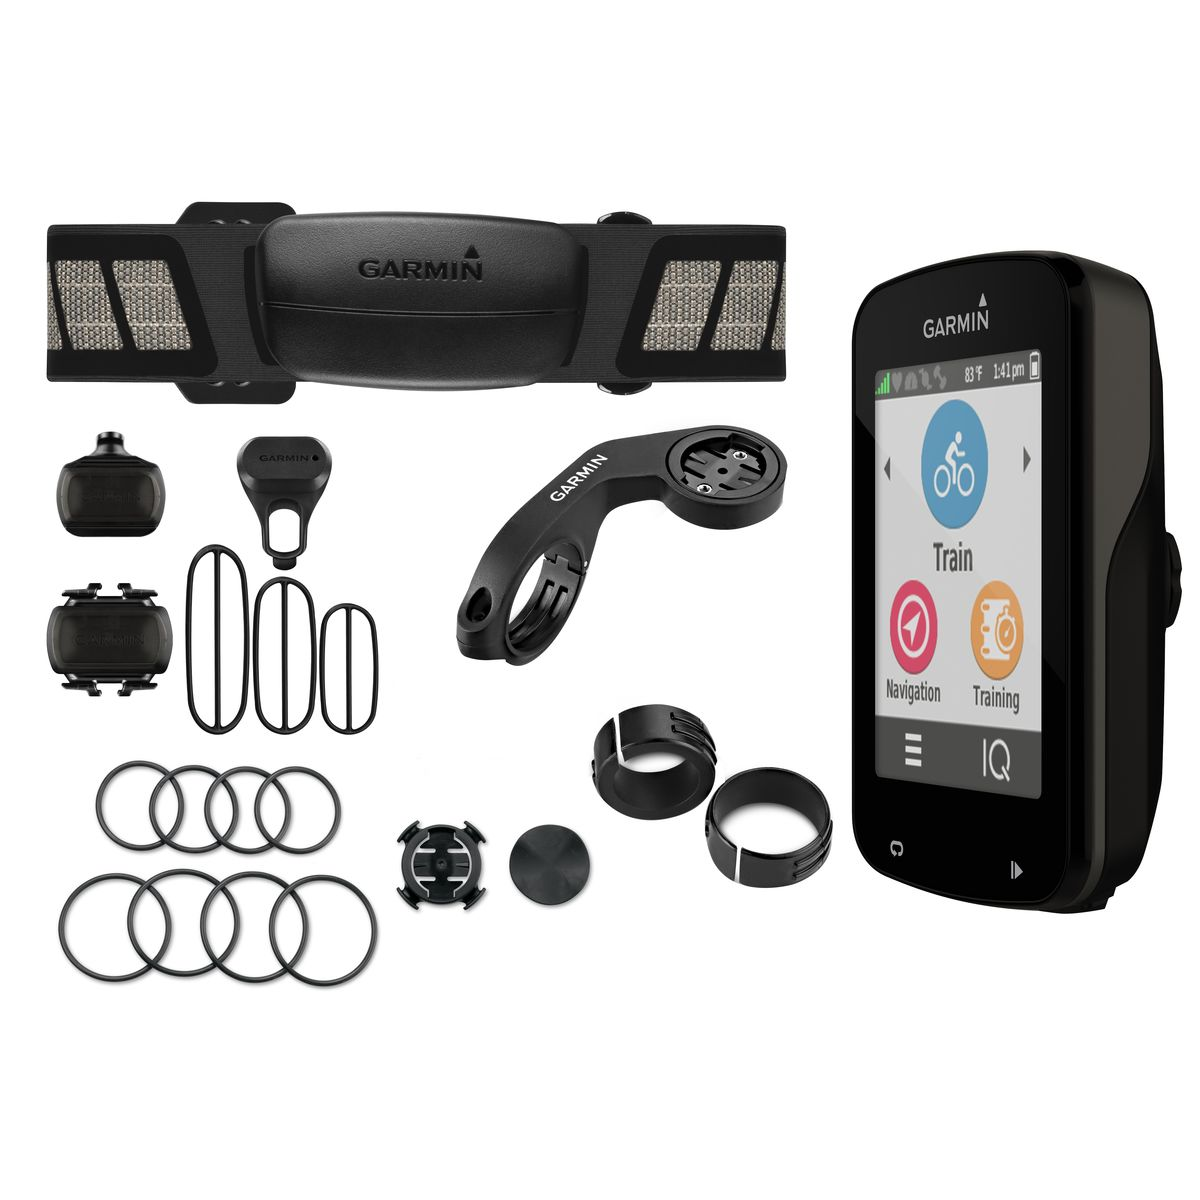 Gps Garmin Edge 820 Bundle  010-01626-11